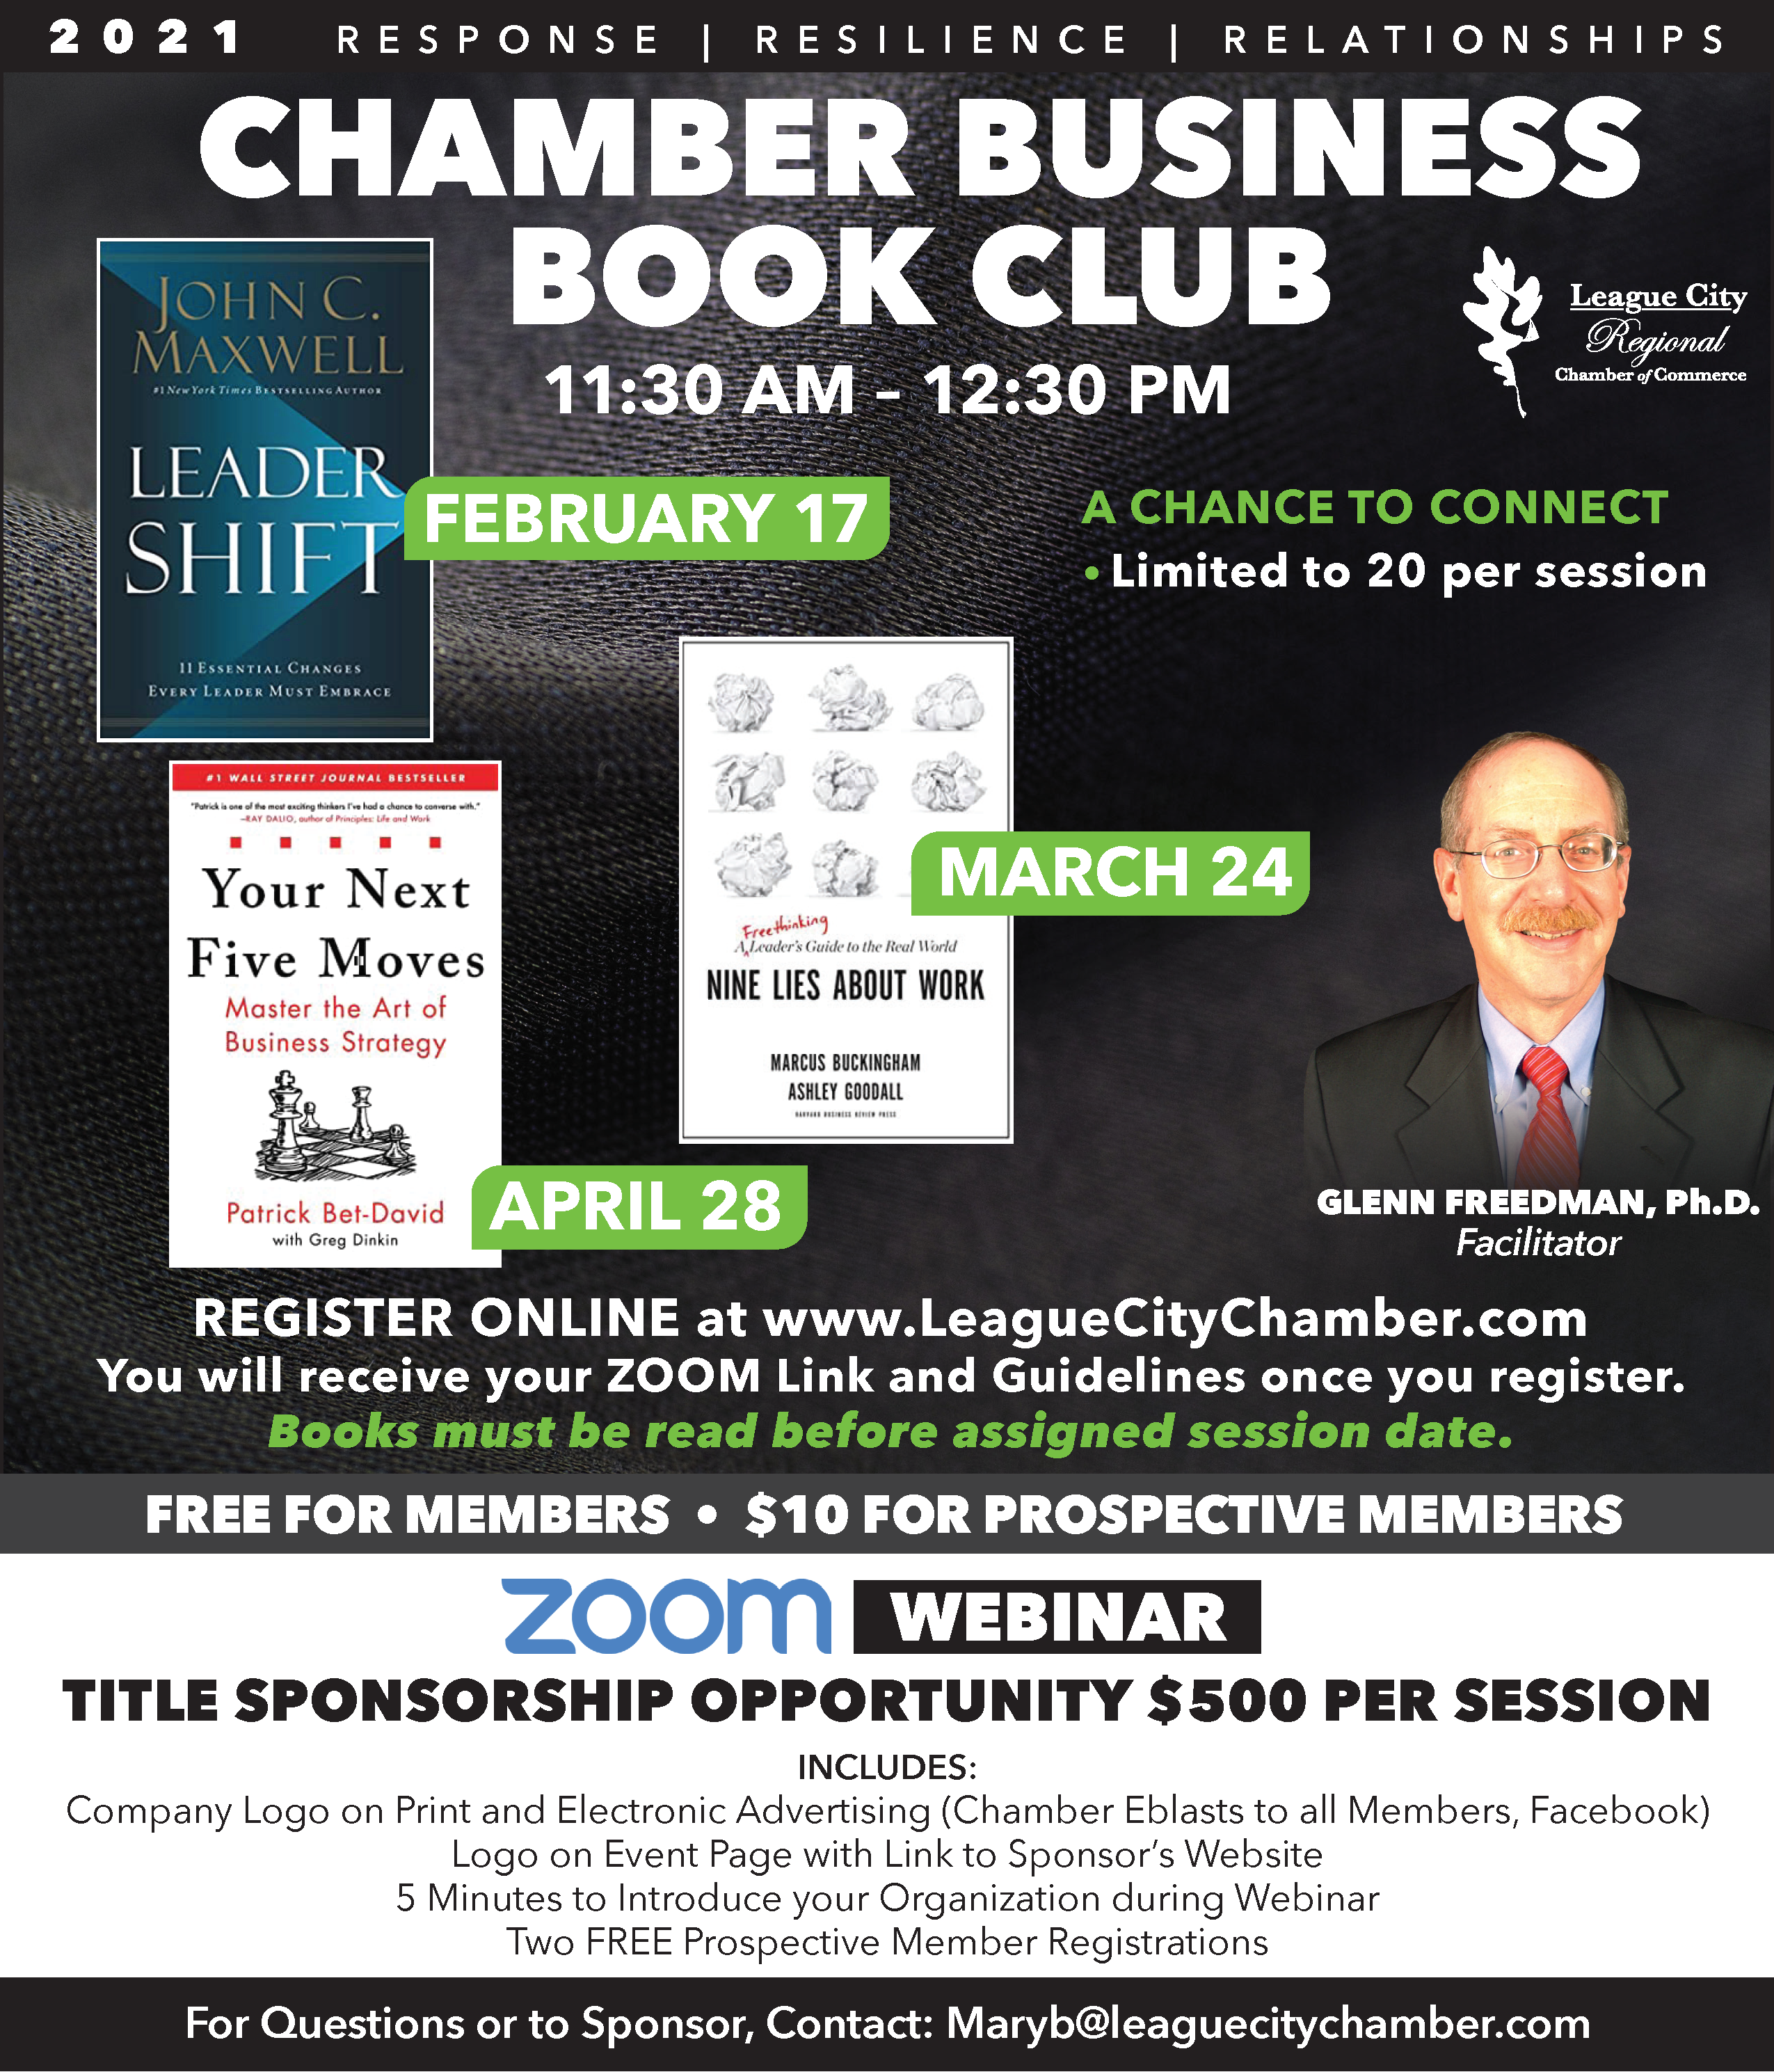 League City Regional Chamber launches first ever book club